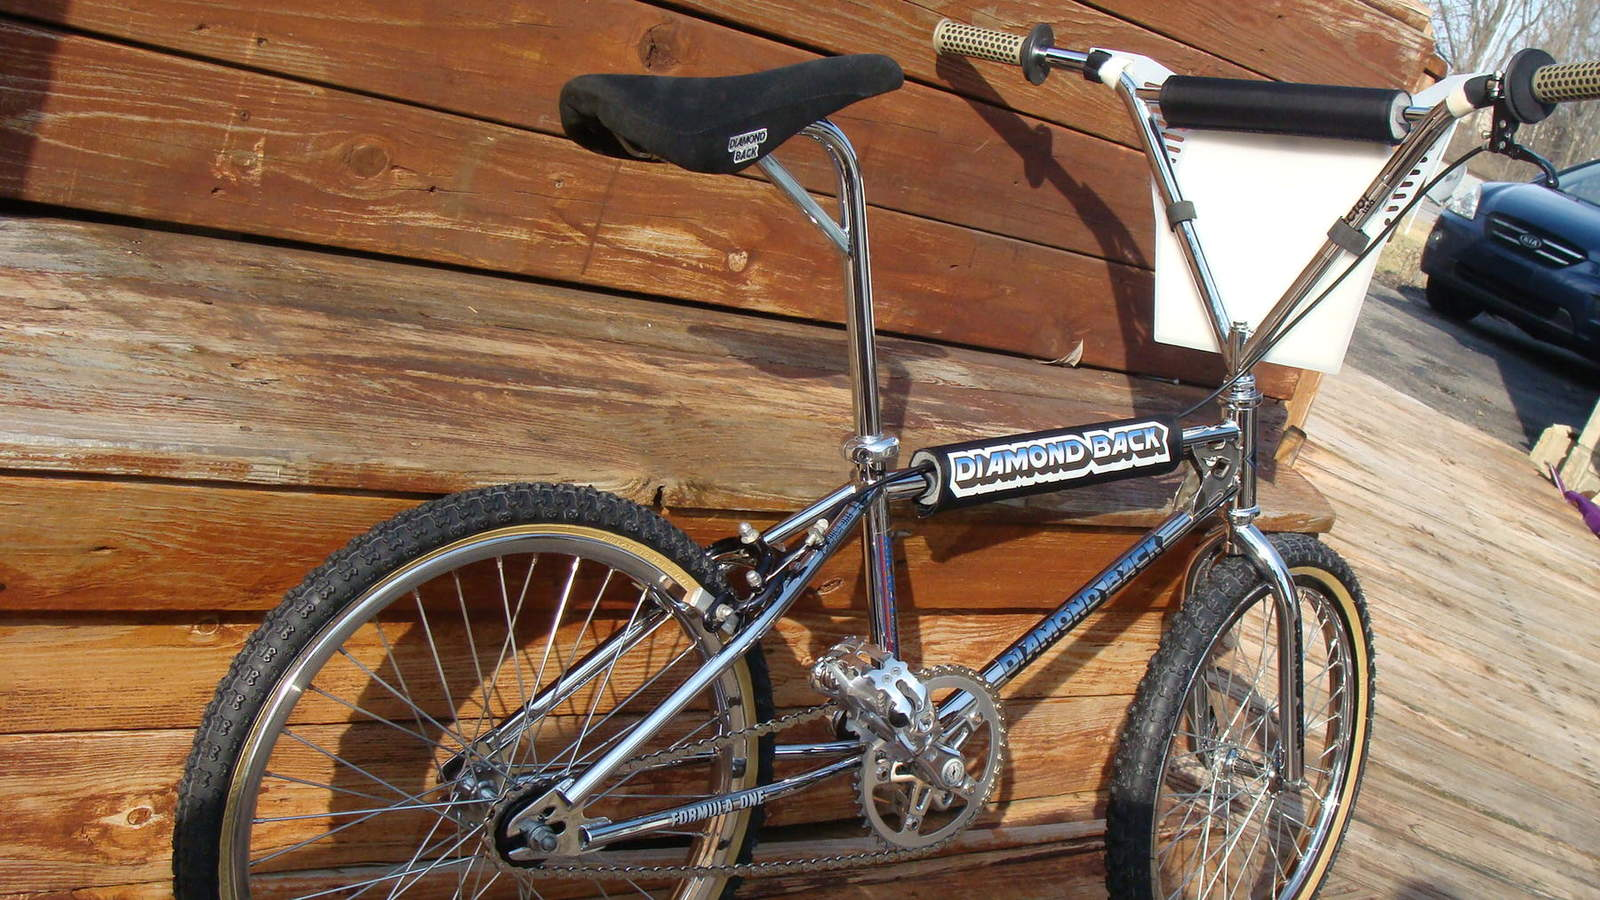 http://uploads.bmxmuseum.com/user-images/36279/dsc0750756c63d209a_blowup-15baf1b9e2f.jpg